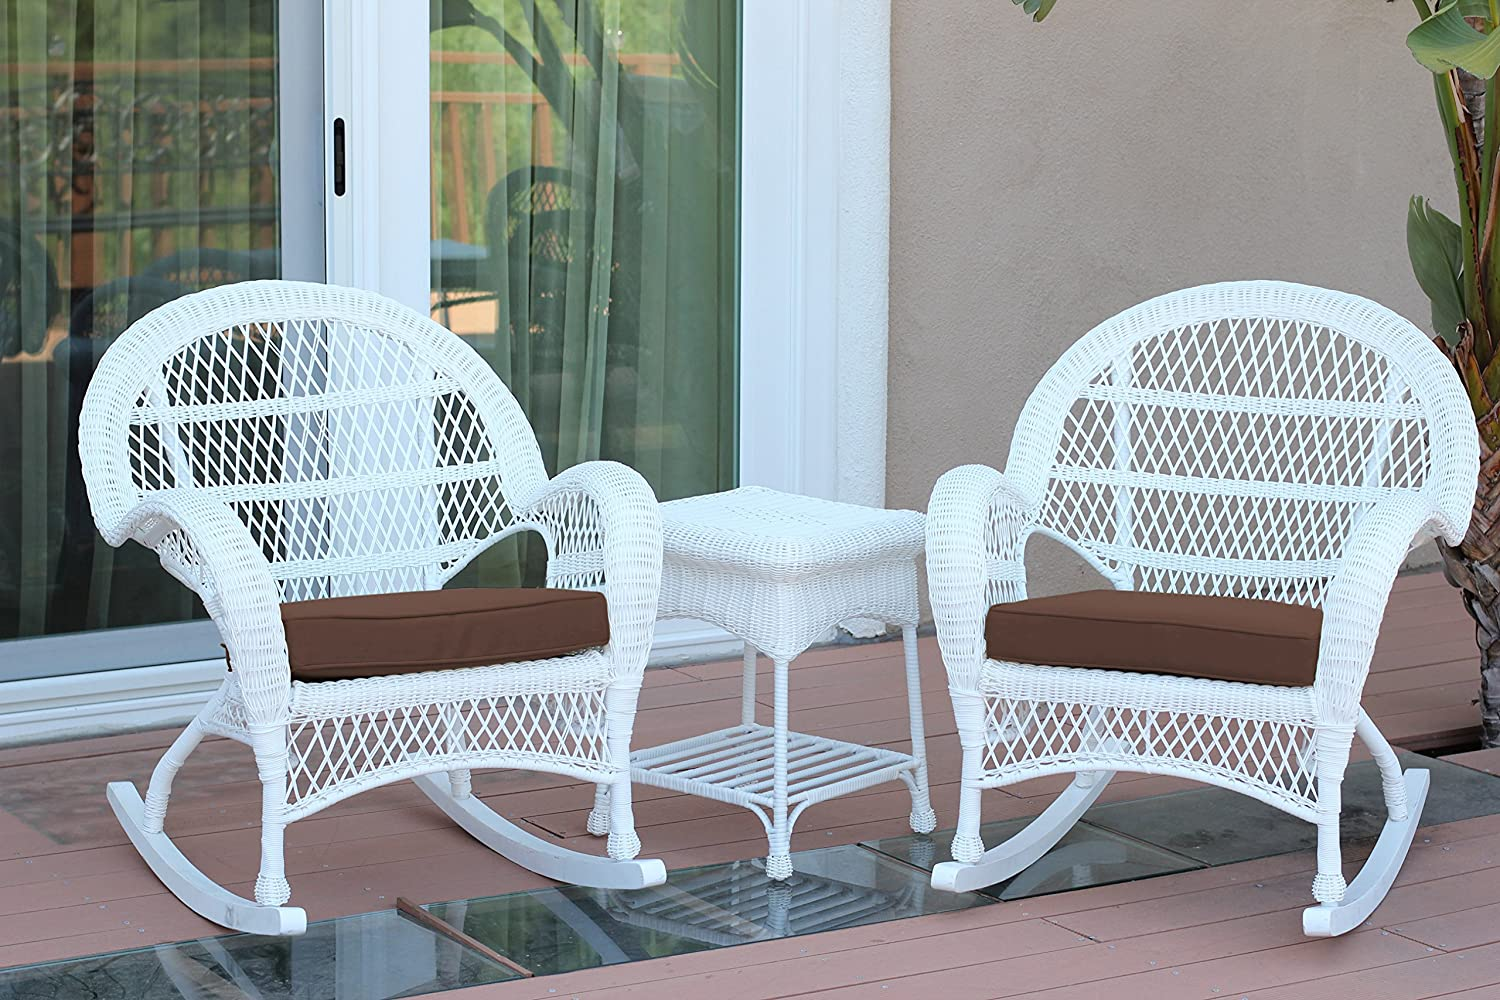 Jeco 3 Piece Santa Maria Rocker Wicker Chair Set with Brown Cushions, White: Furniture & Decor